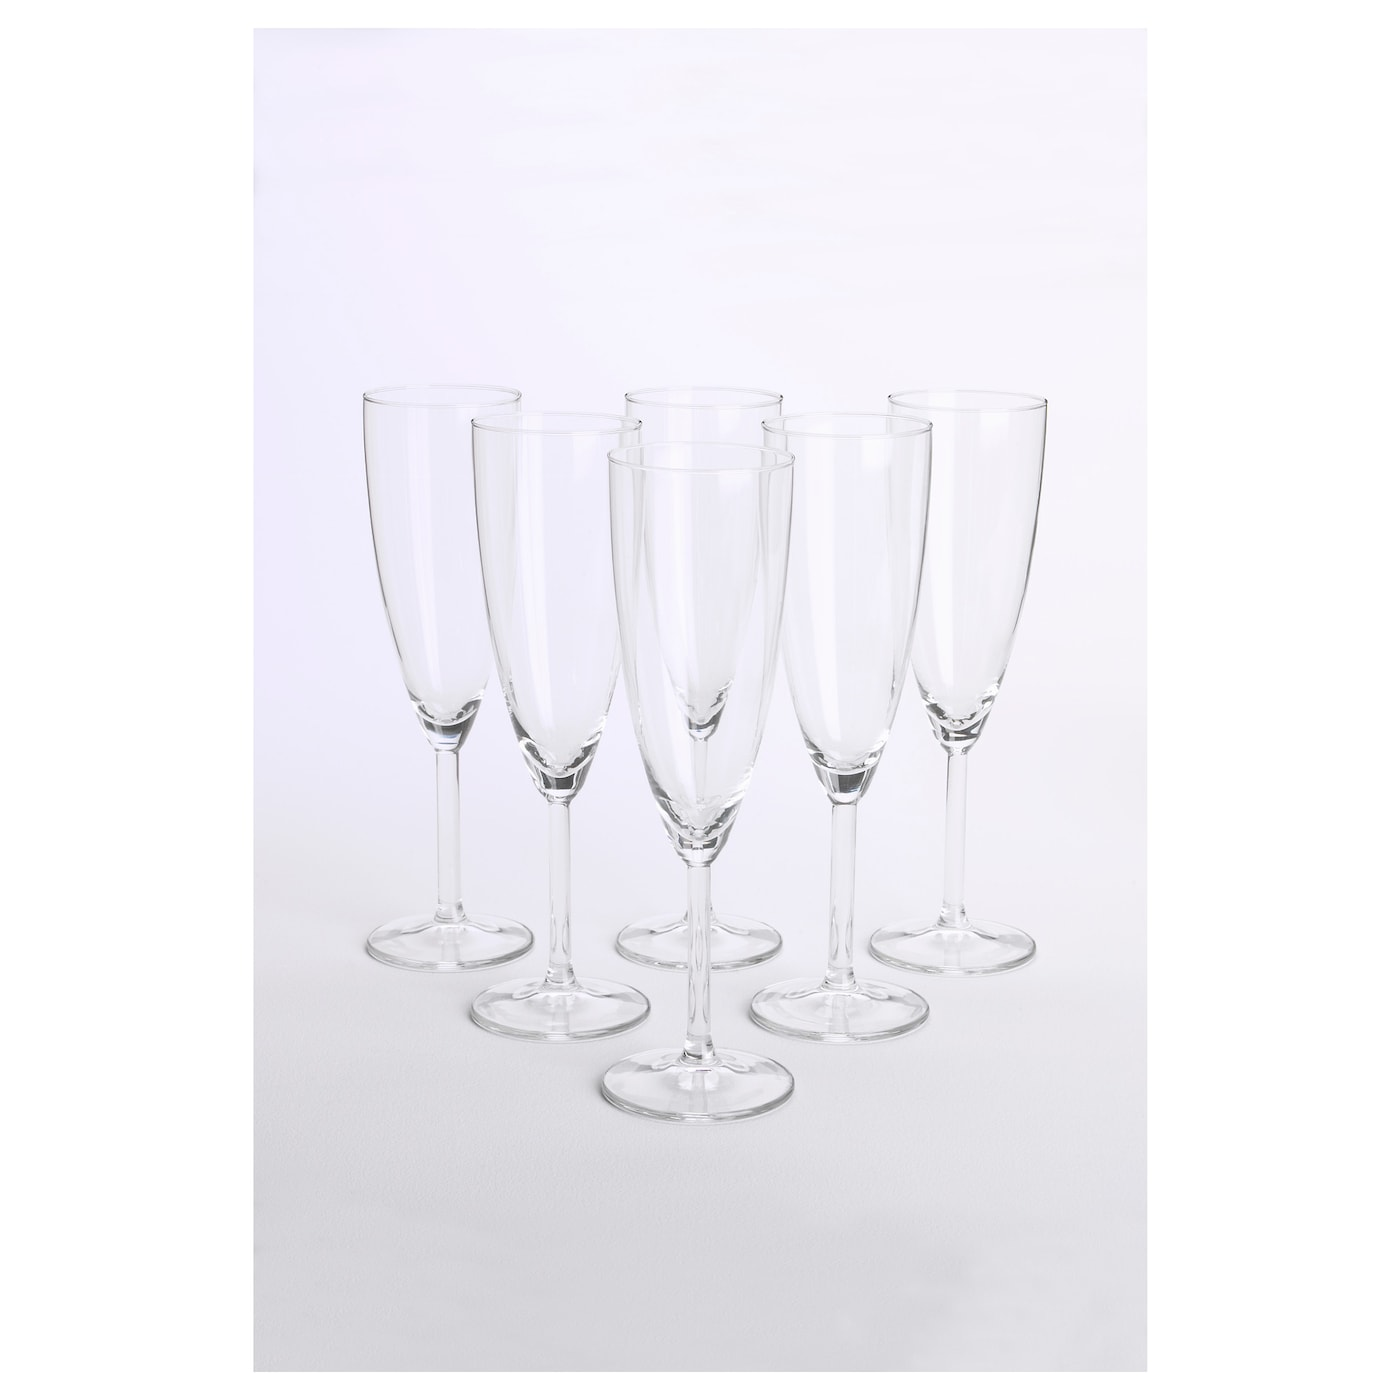 IKEA SVALKA champagne glass Dishwasher-safe.